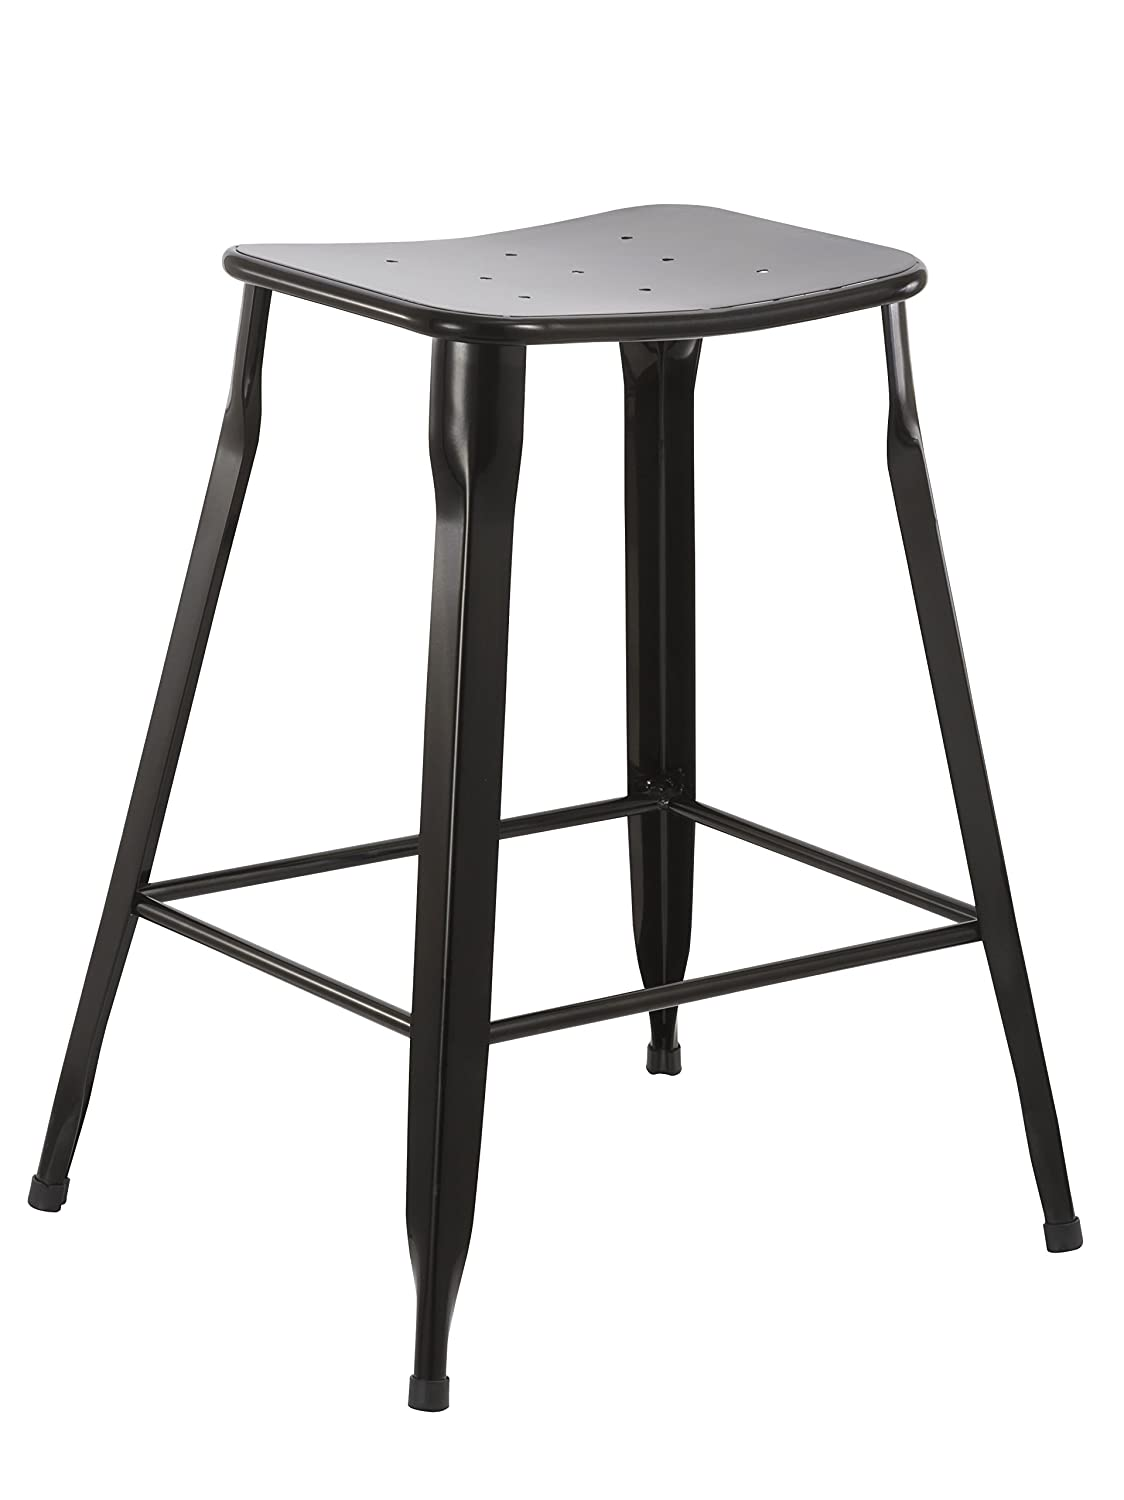 The Pros and Cons of a Backless Bar Stool